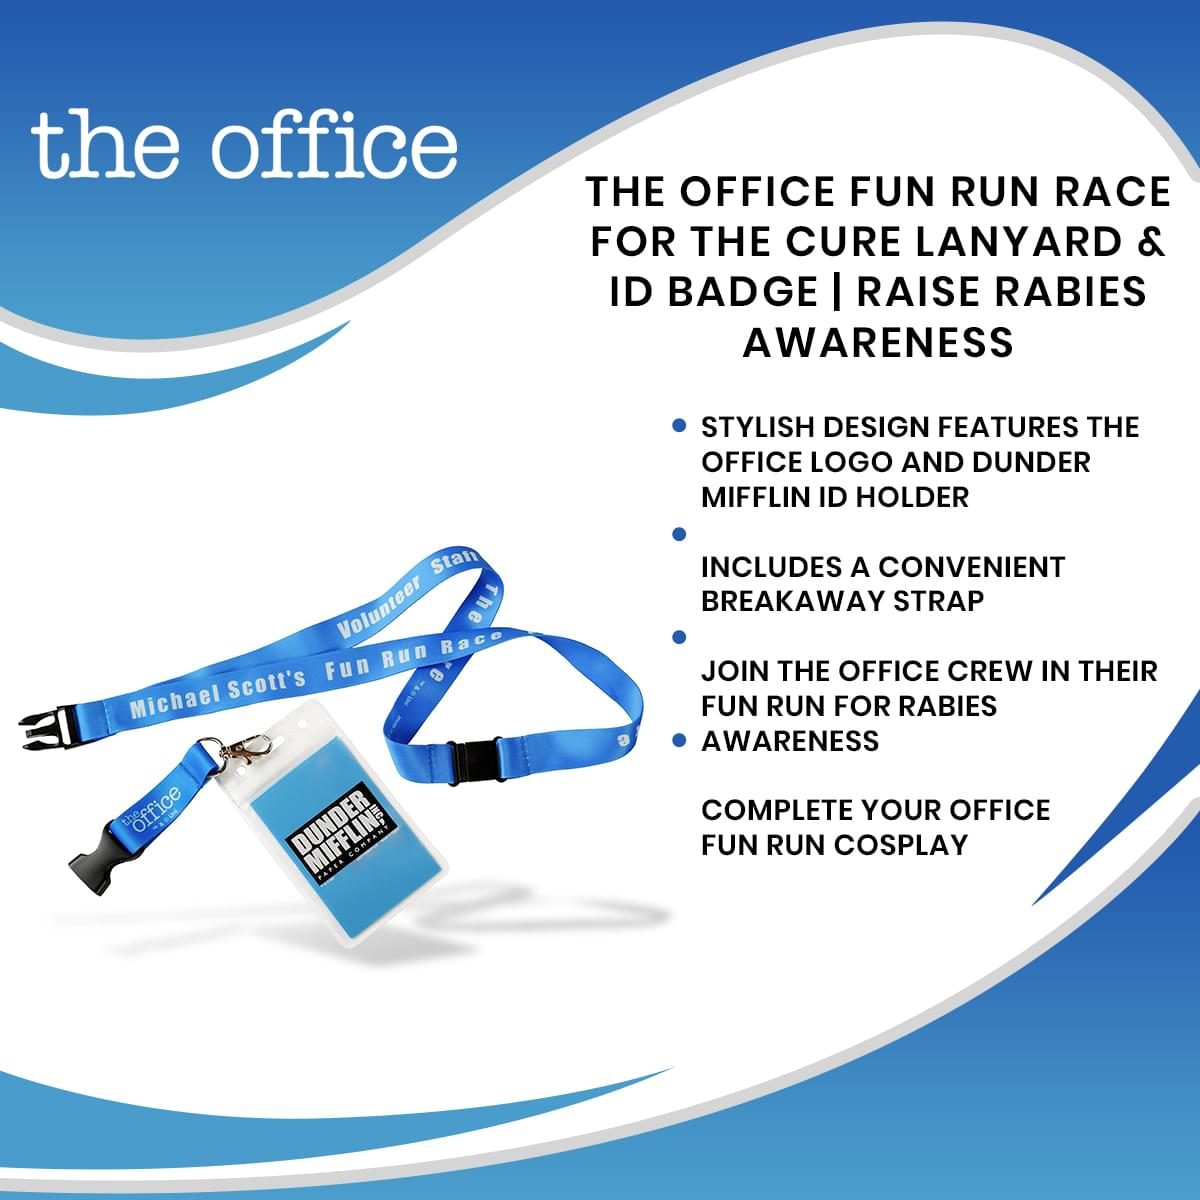 The Office Fun Run Race For The Cure Lanyard & ID Badge | Raise Rabies Awareness